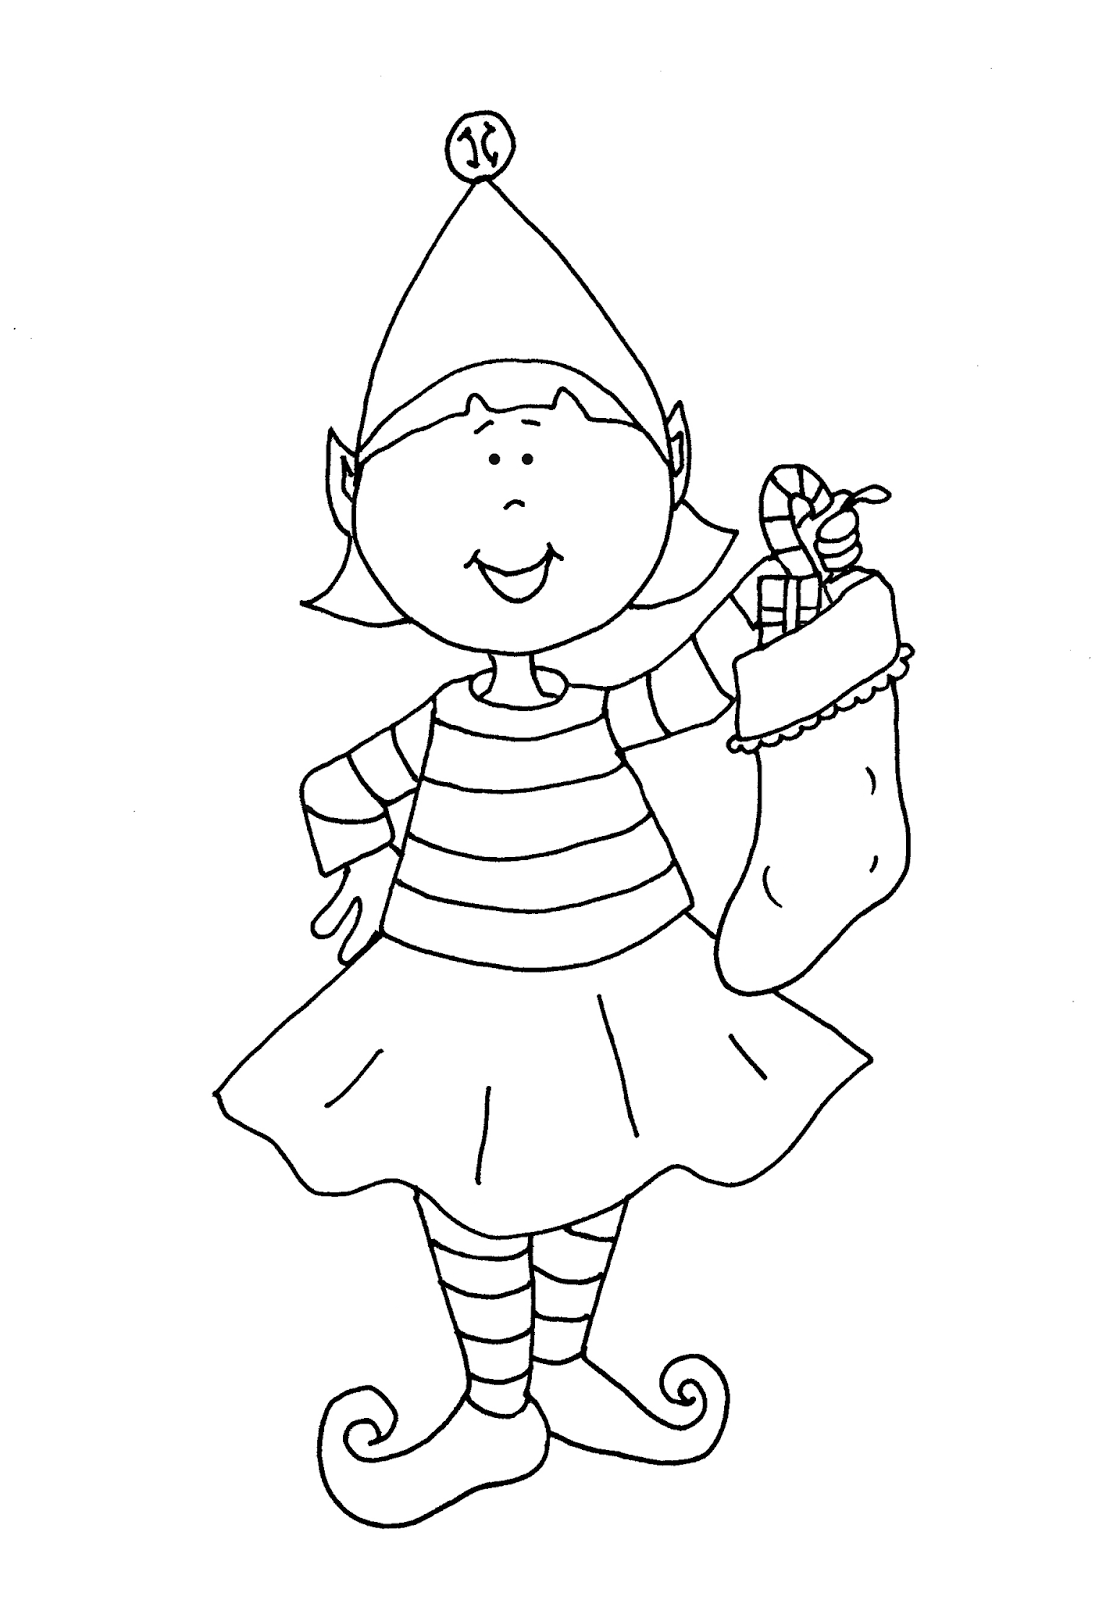 Printable Girl Elf On The Shelf Coloring Pages - Coloring Home